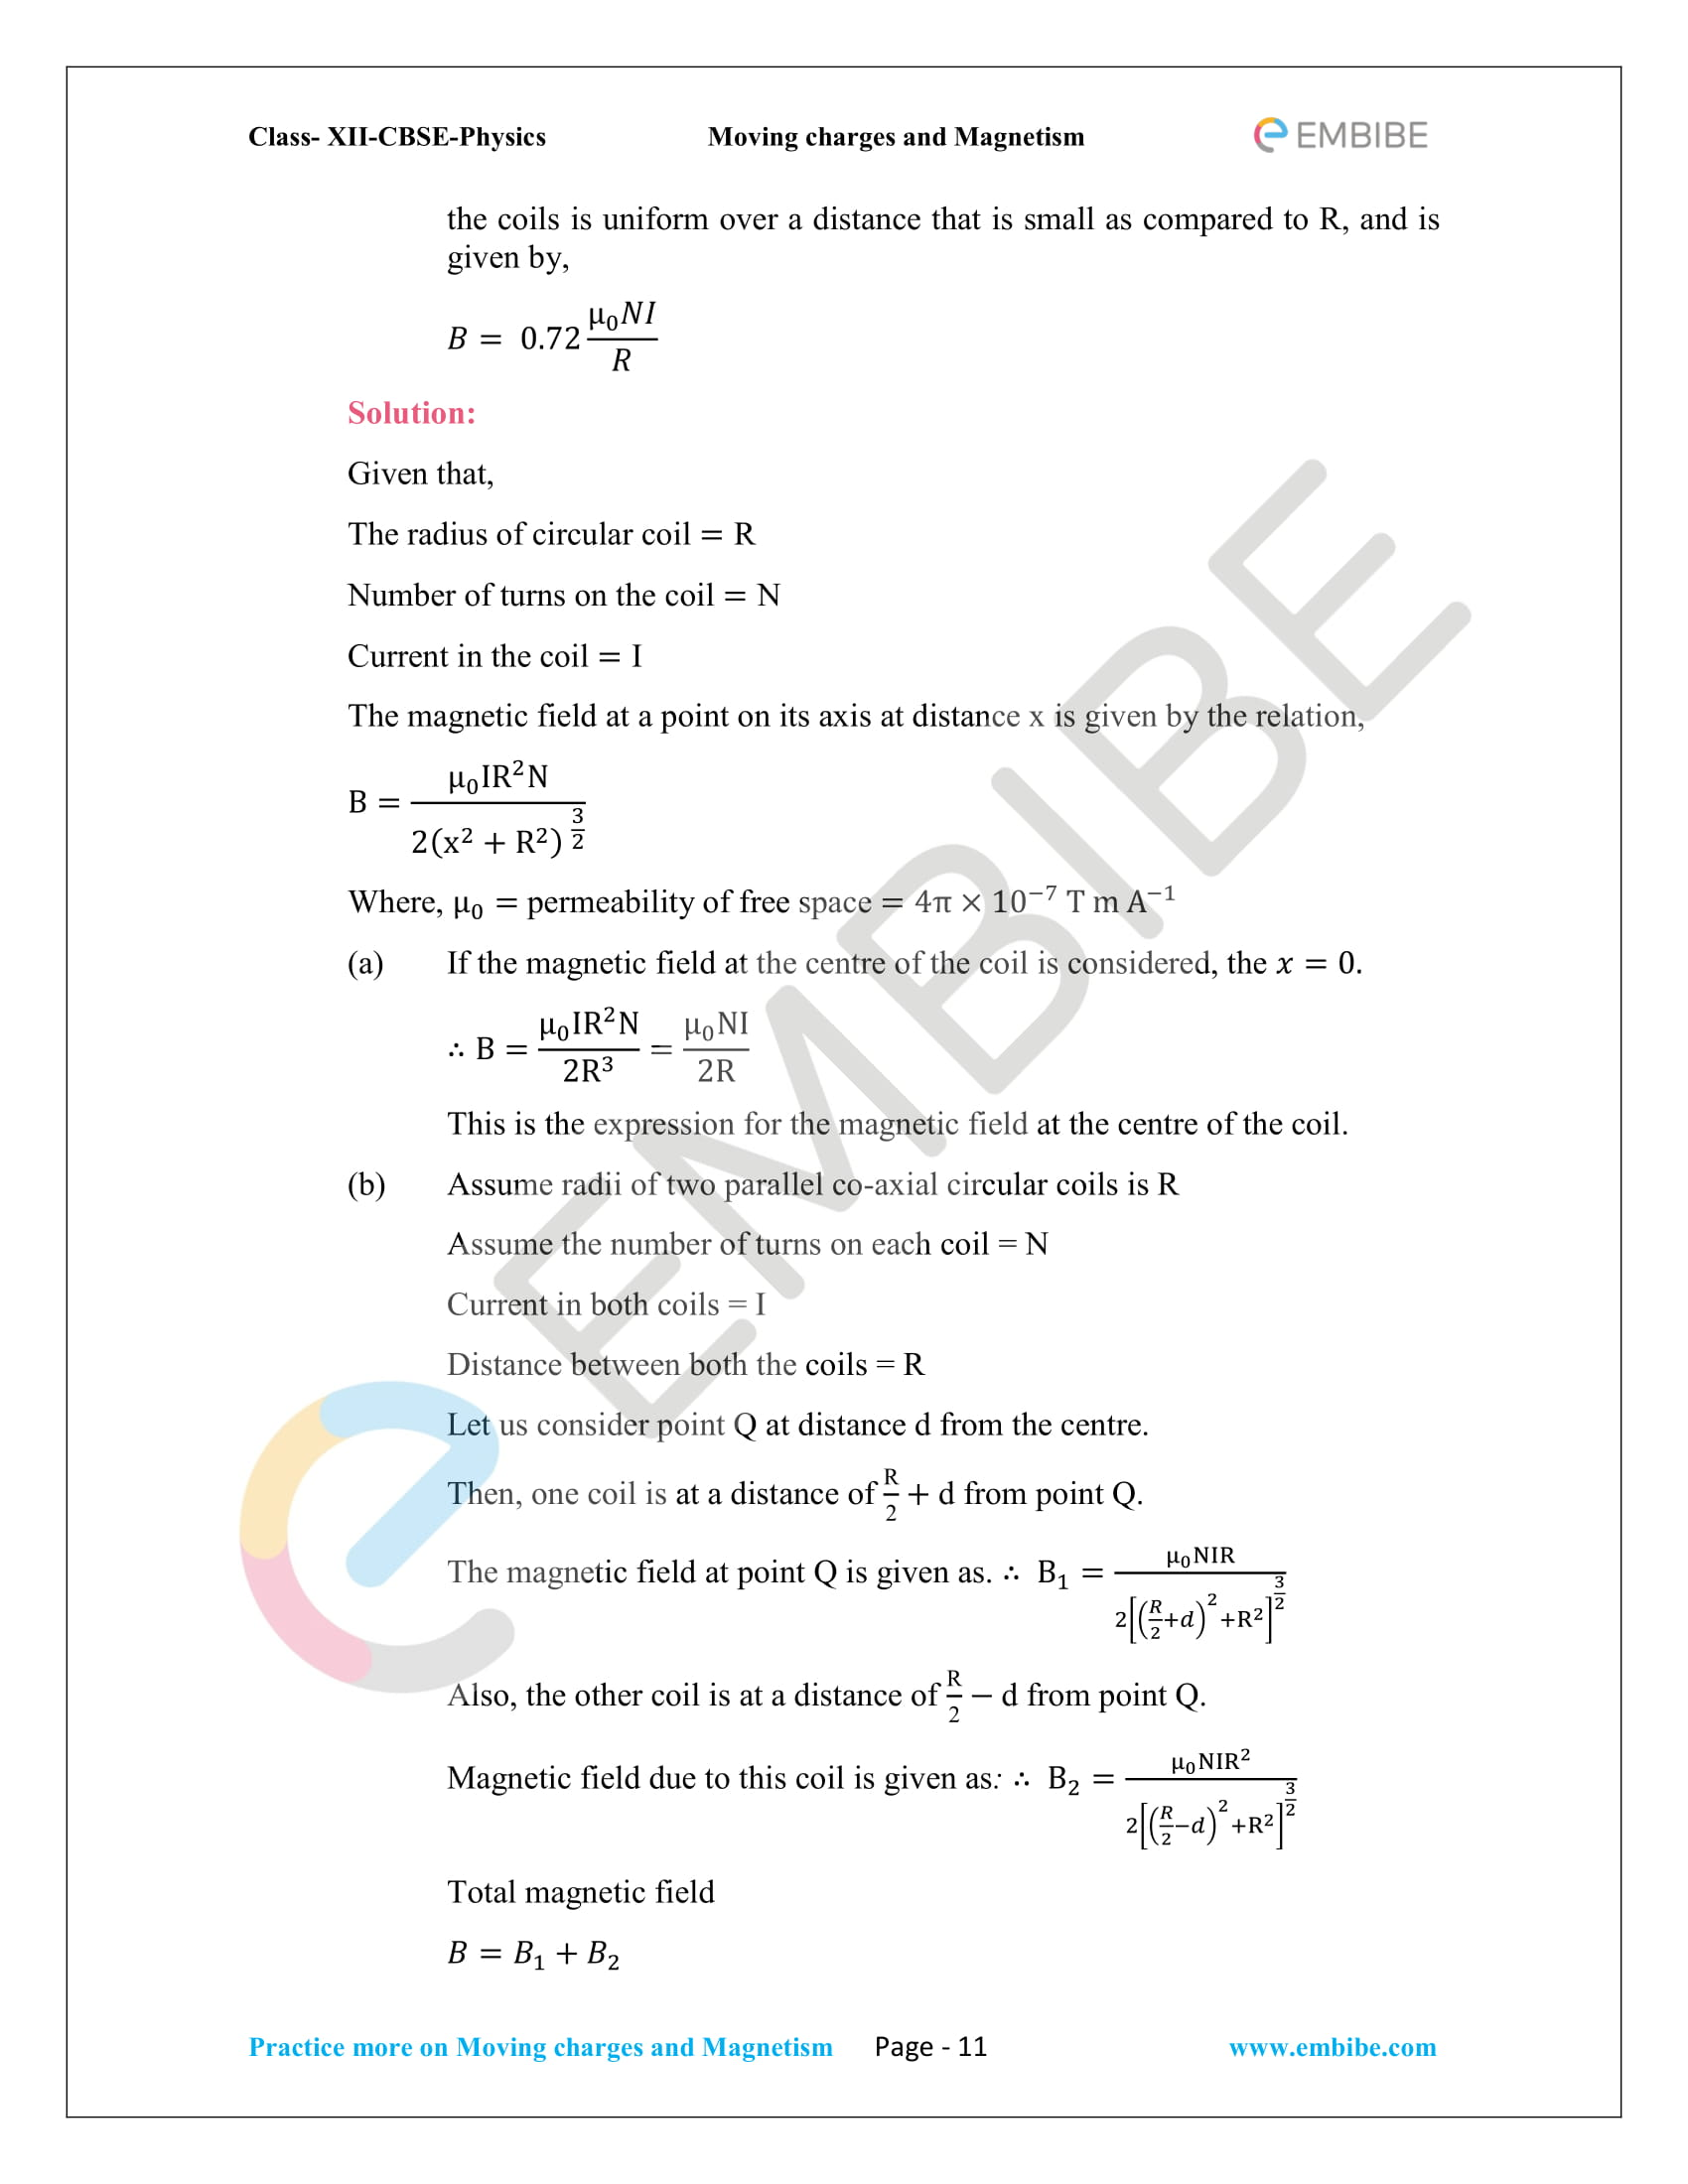 NCERT_Grade 12_Physics_Ch_04_Moving Charges and Magnetism-11